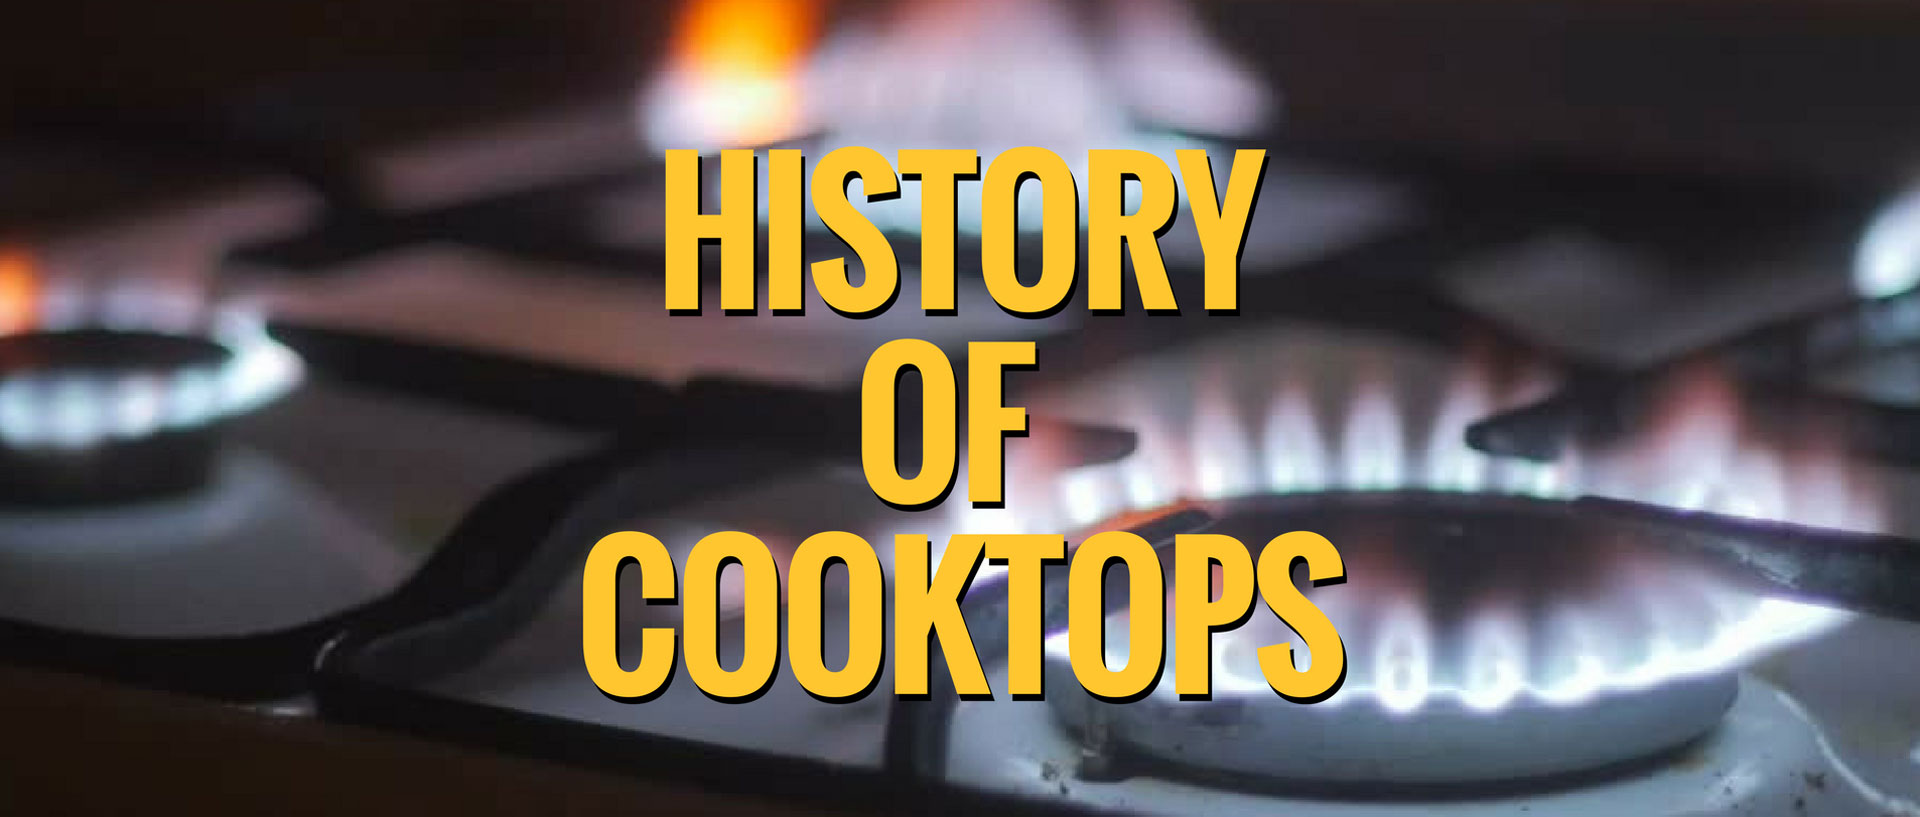 History of Cooktops